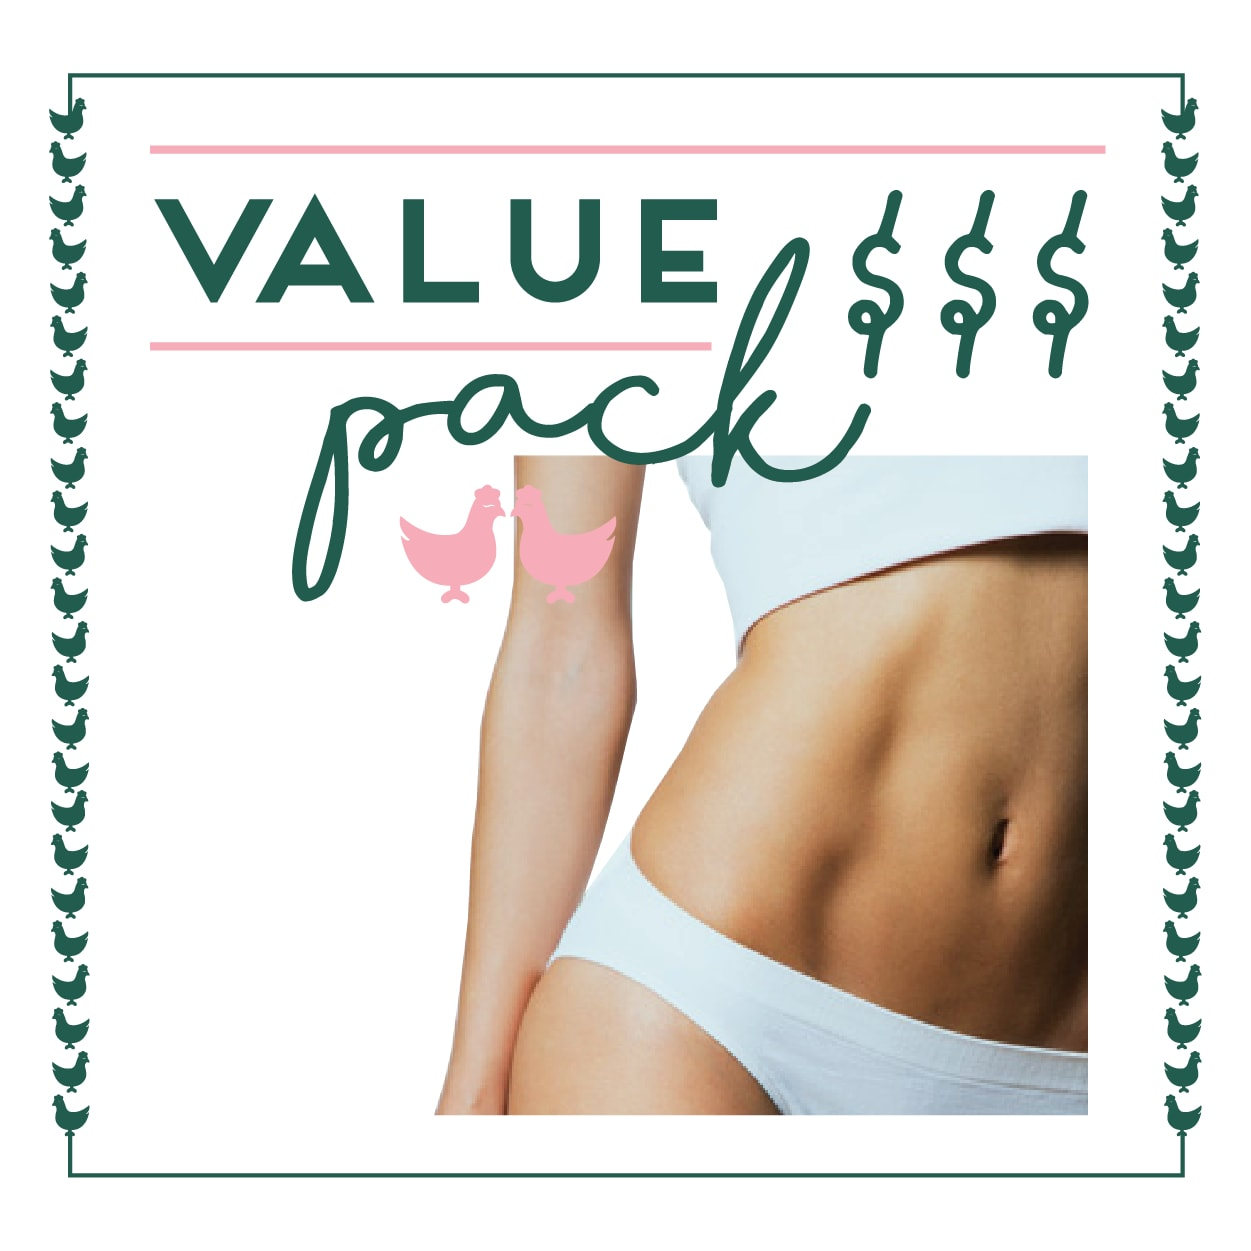 Stomach Laser - 6 Session Value Pack